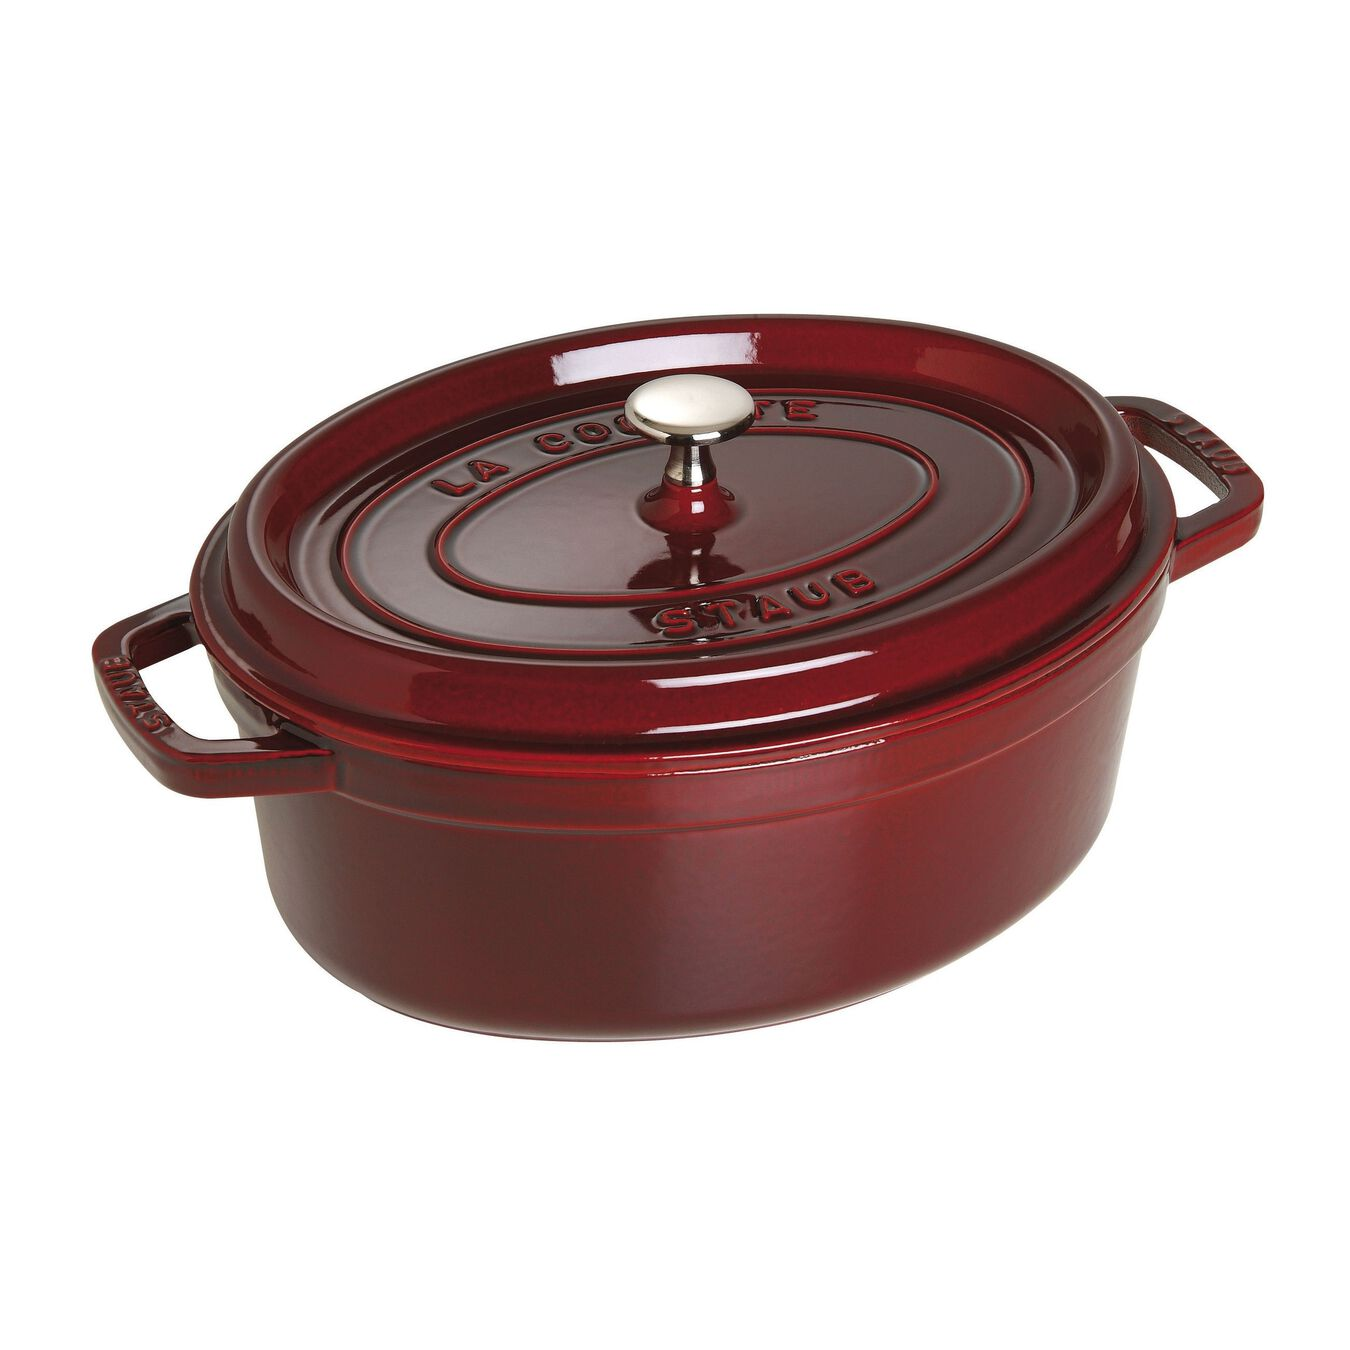 Cocotte 29 cm, oval, Grenadine-Rot, Gusseisen,,large 2